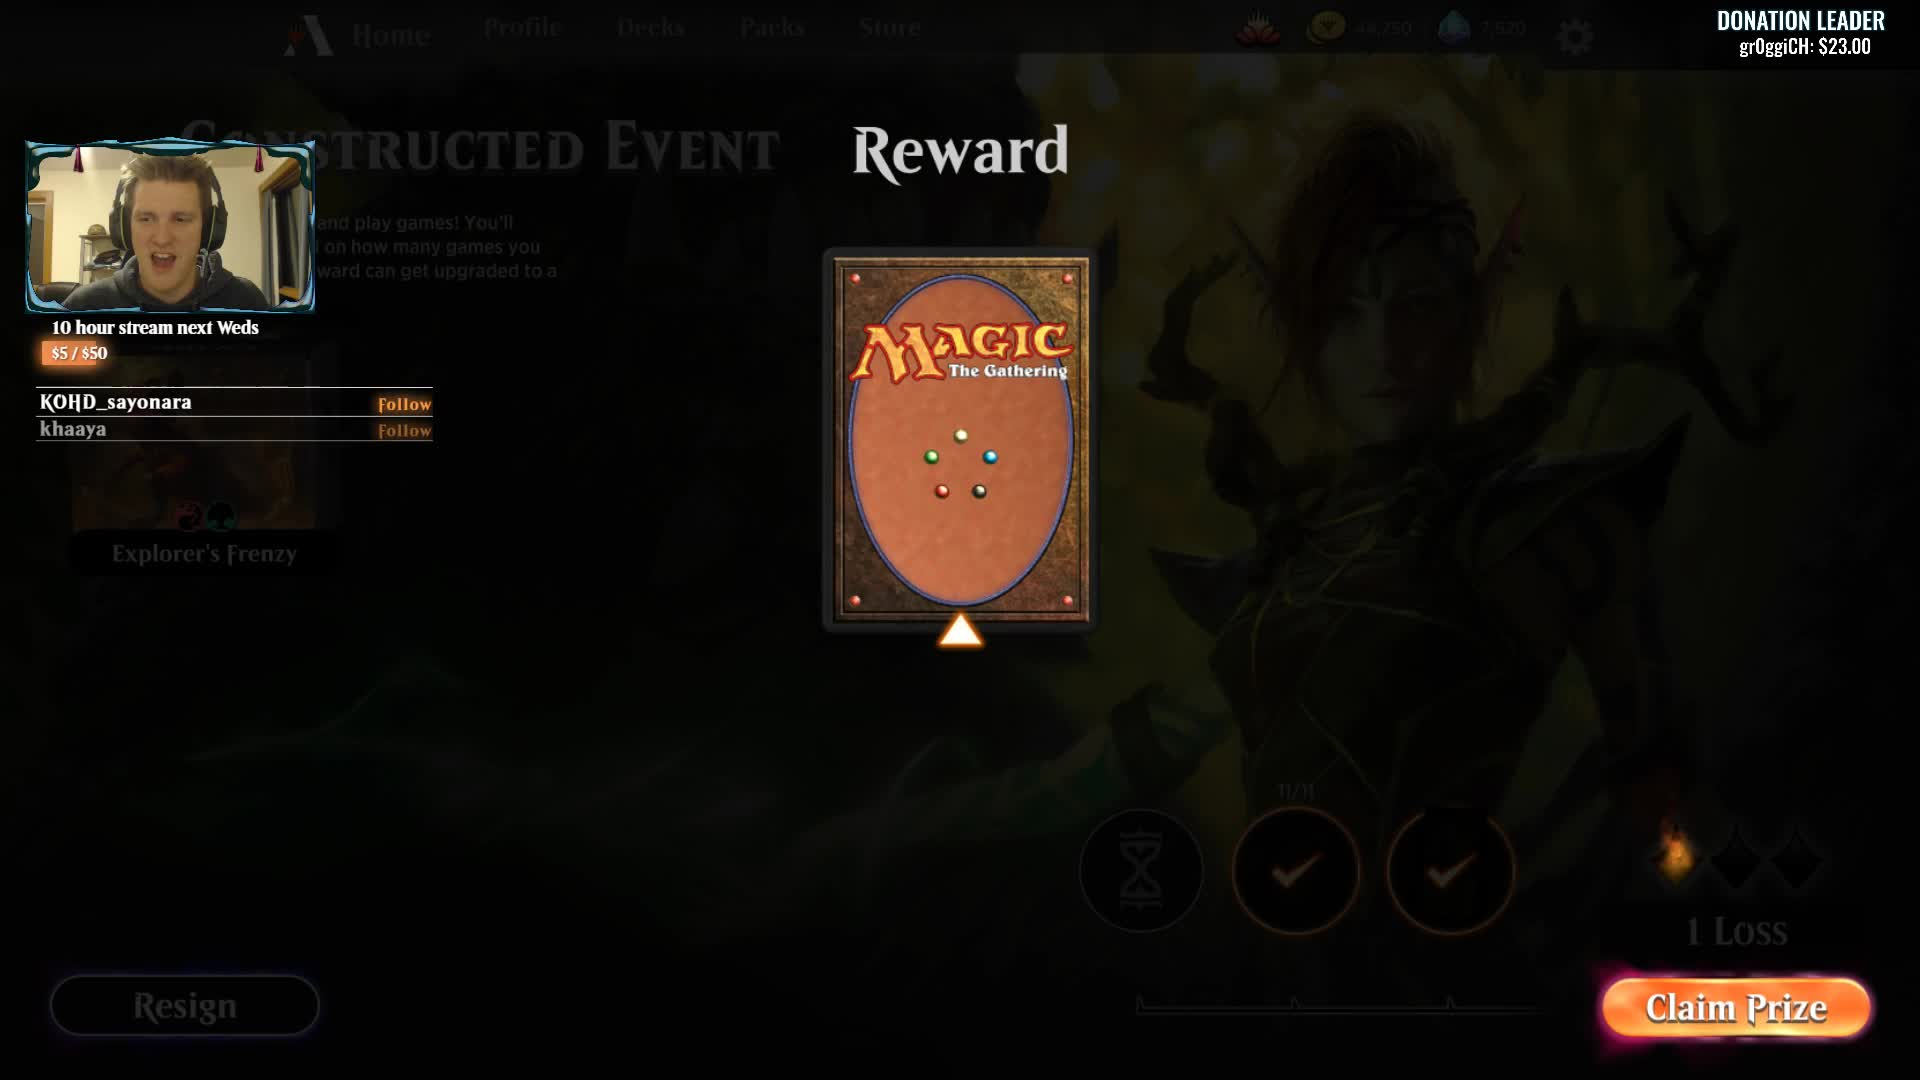 Covertgoblue - GIVEAWAY - A code for an Arena Ravnica pack